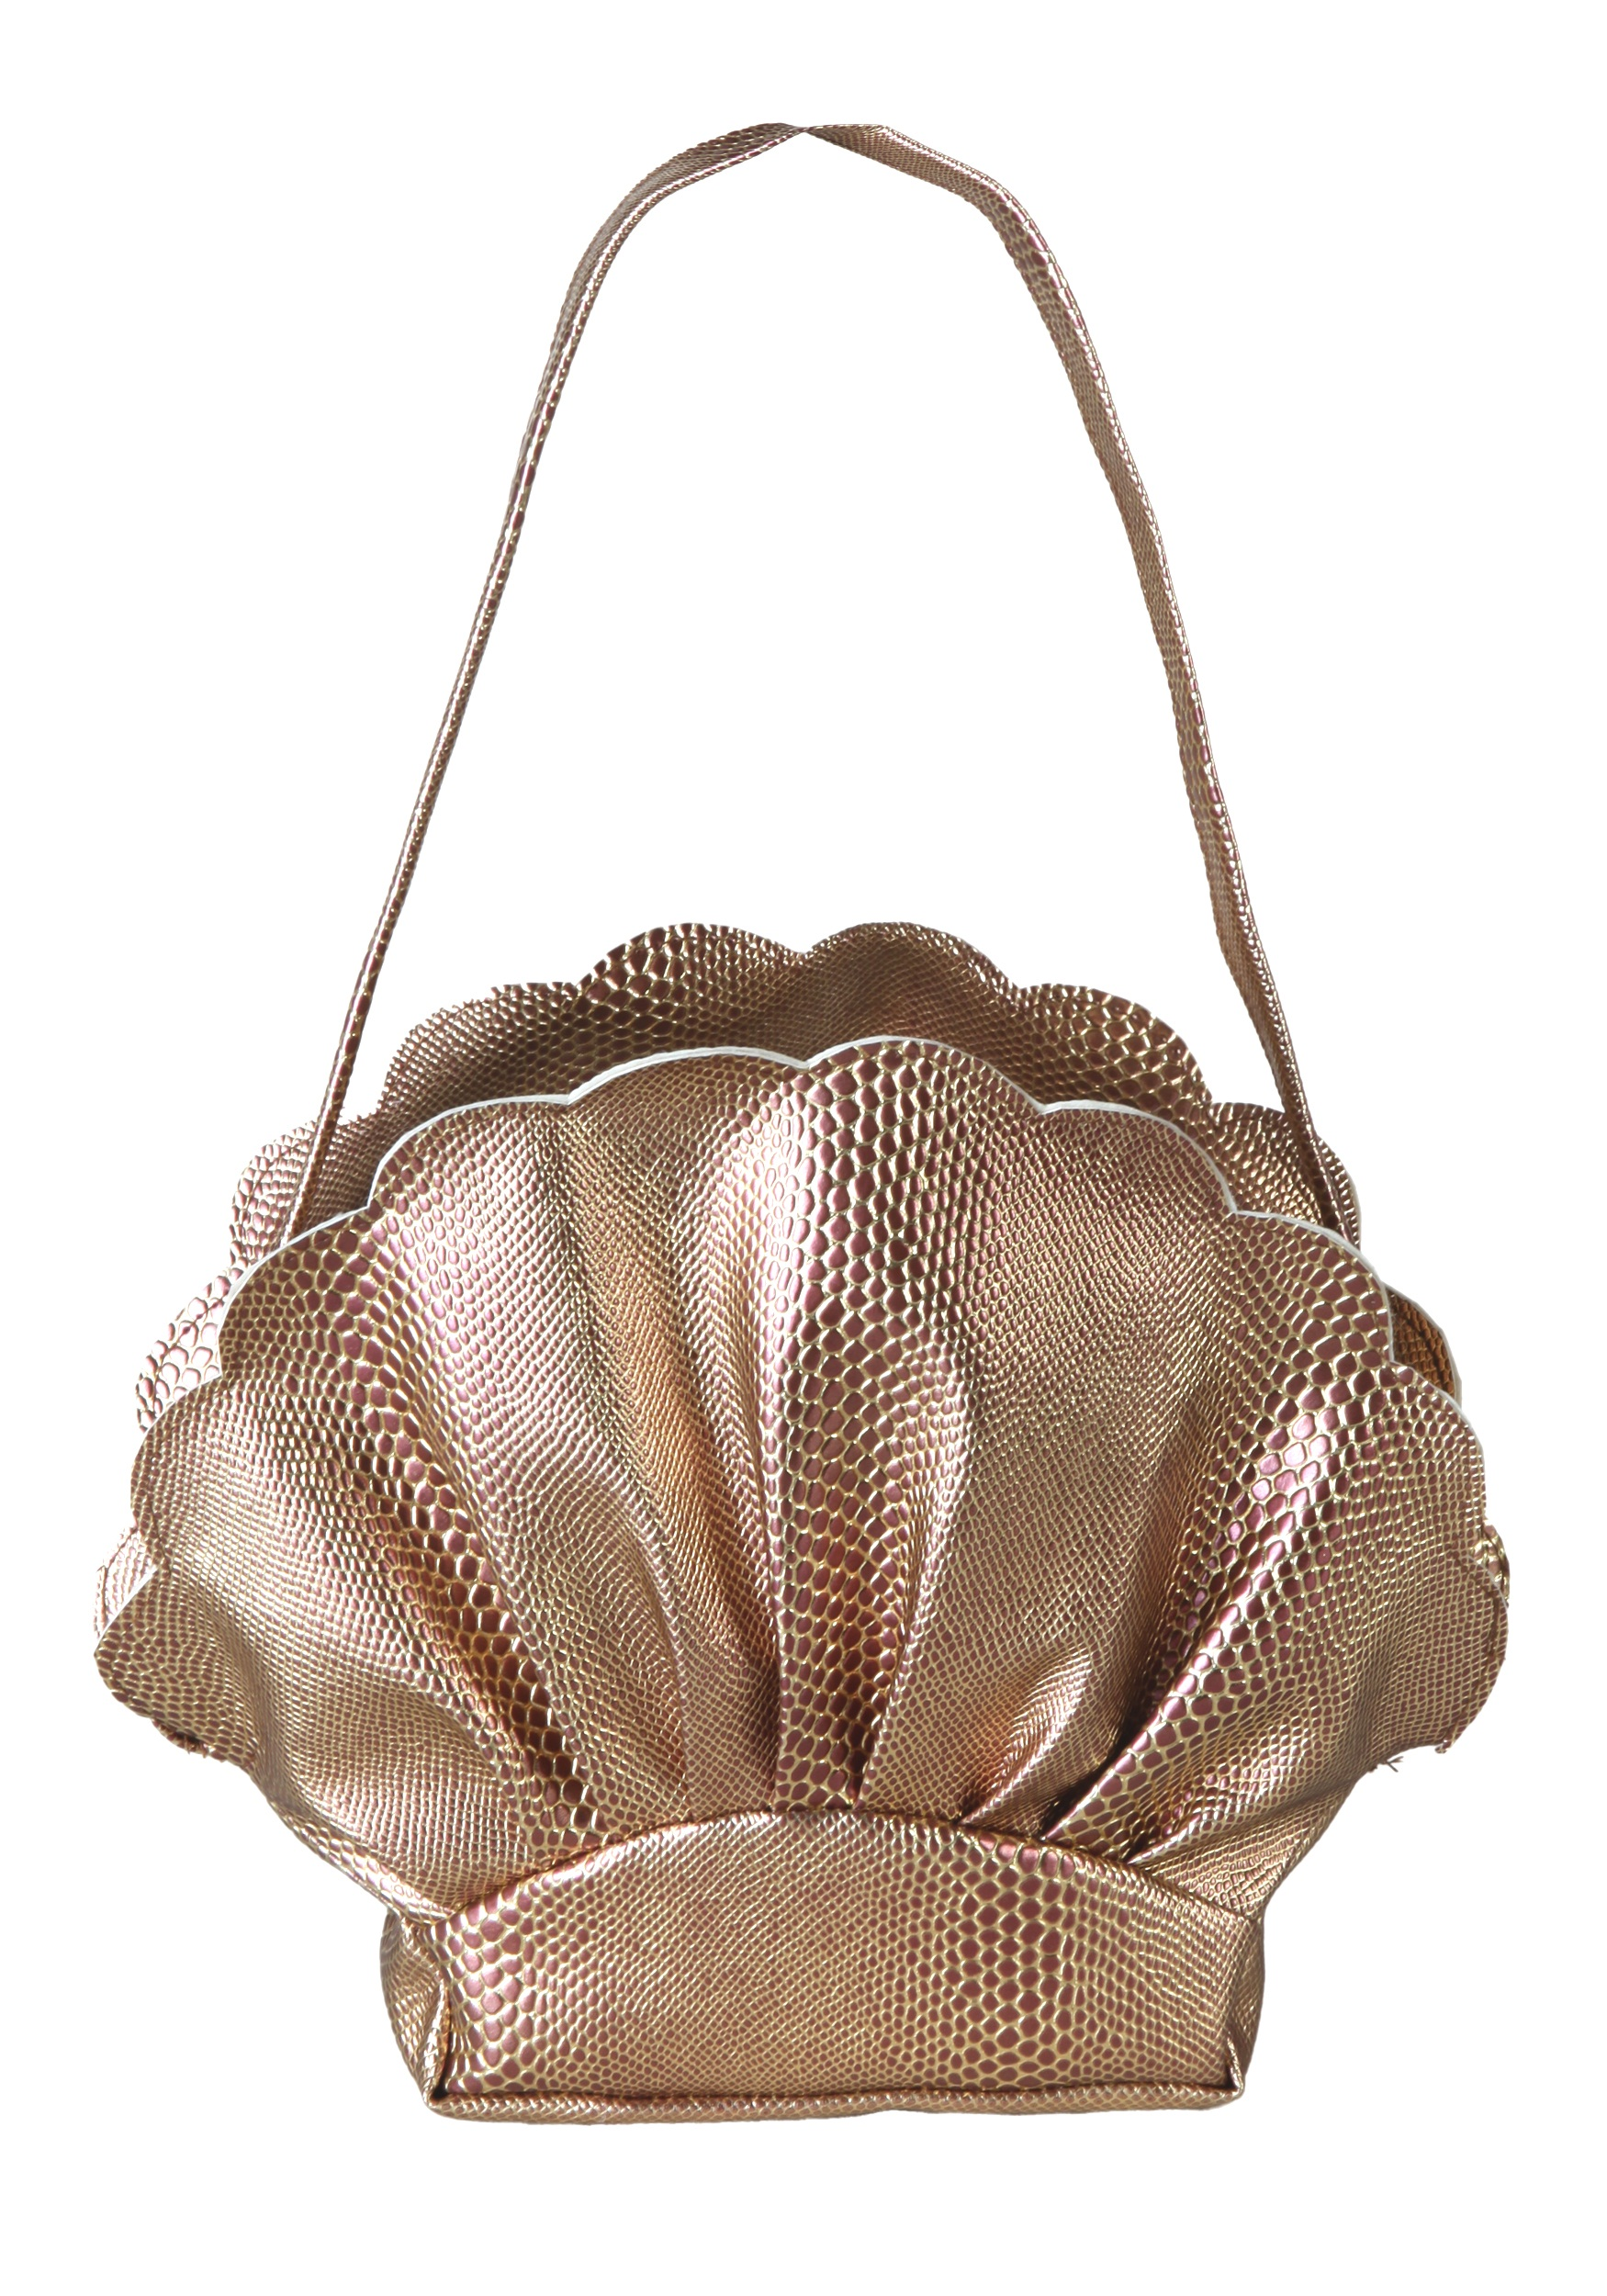 Sea Shell Handbag Purse photo